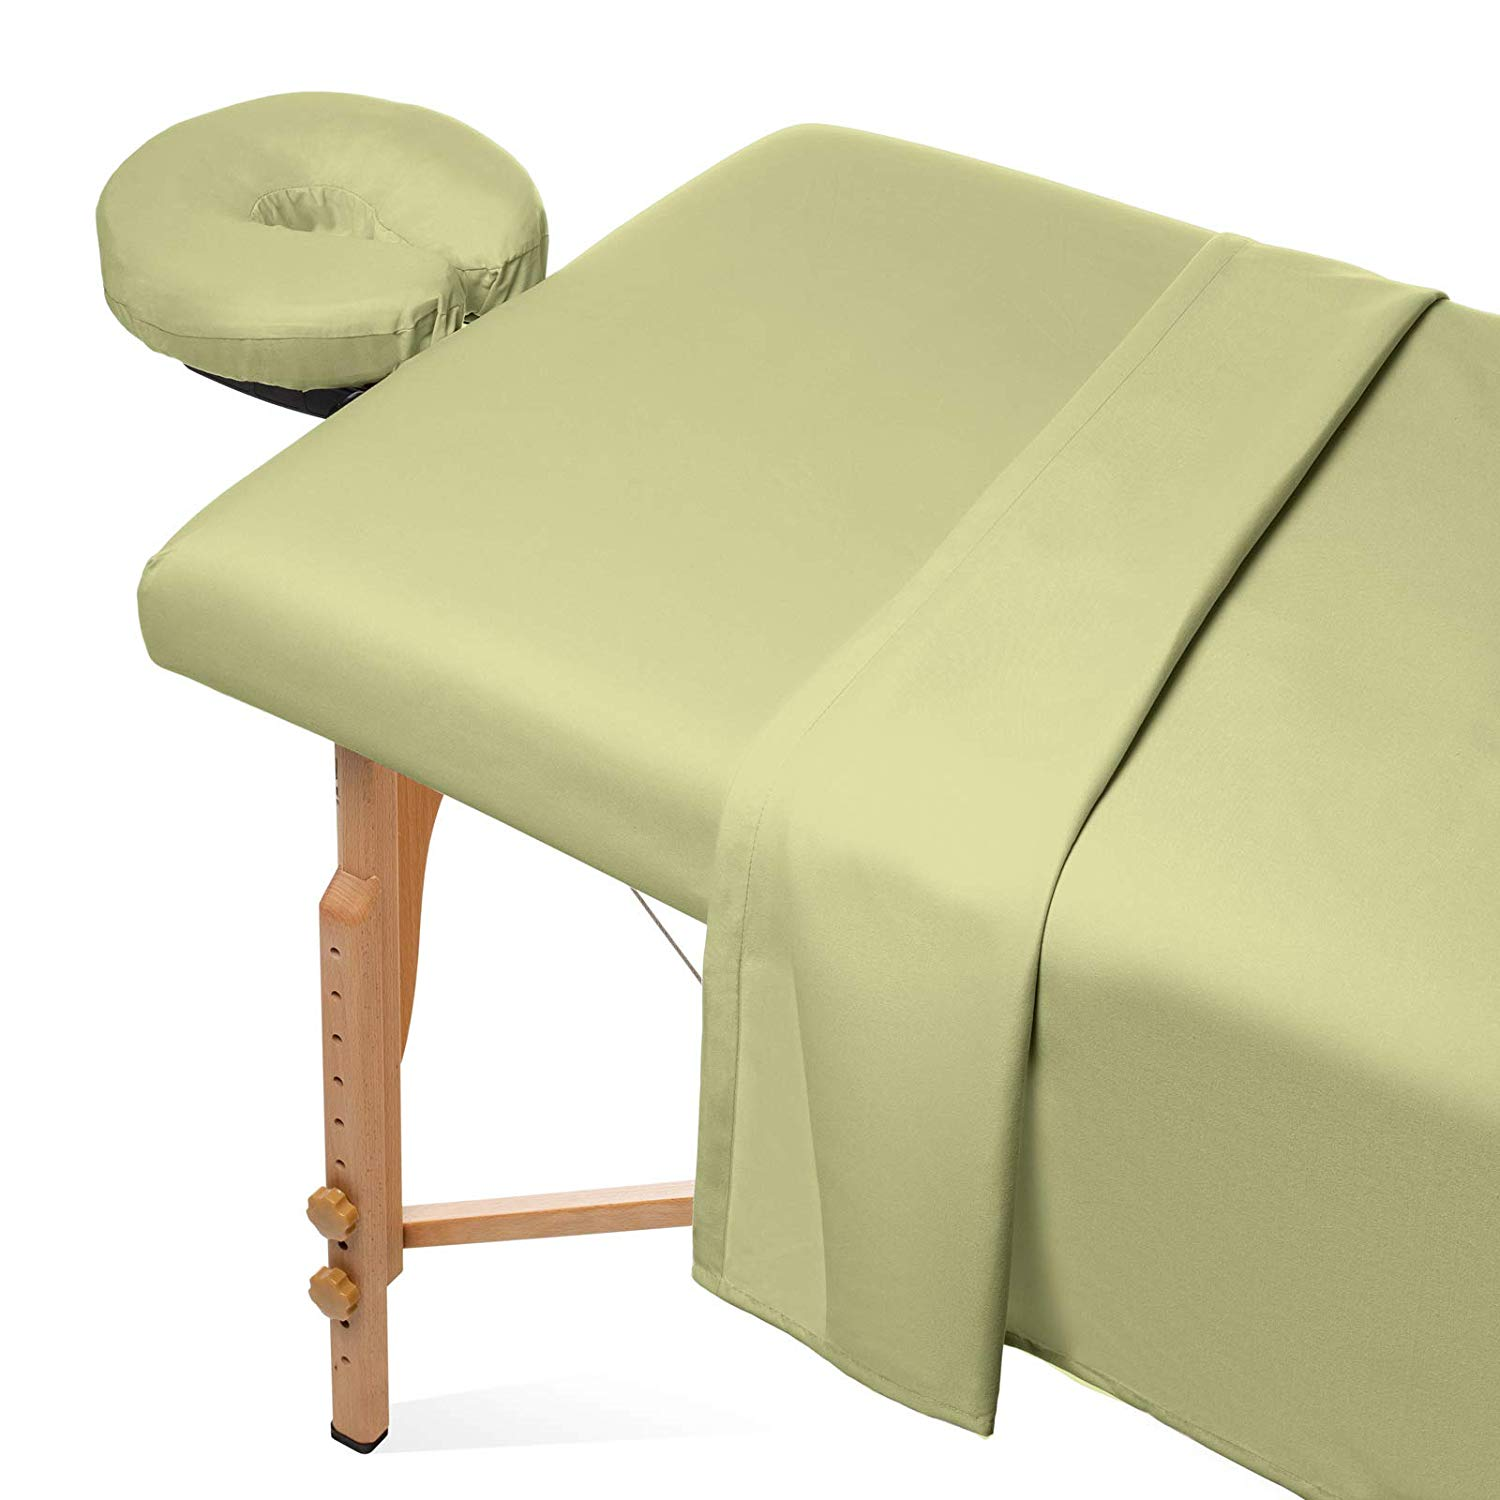 Cheap Disposable Massage Table Fitted Cover Find Disposable Massage